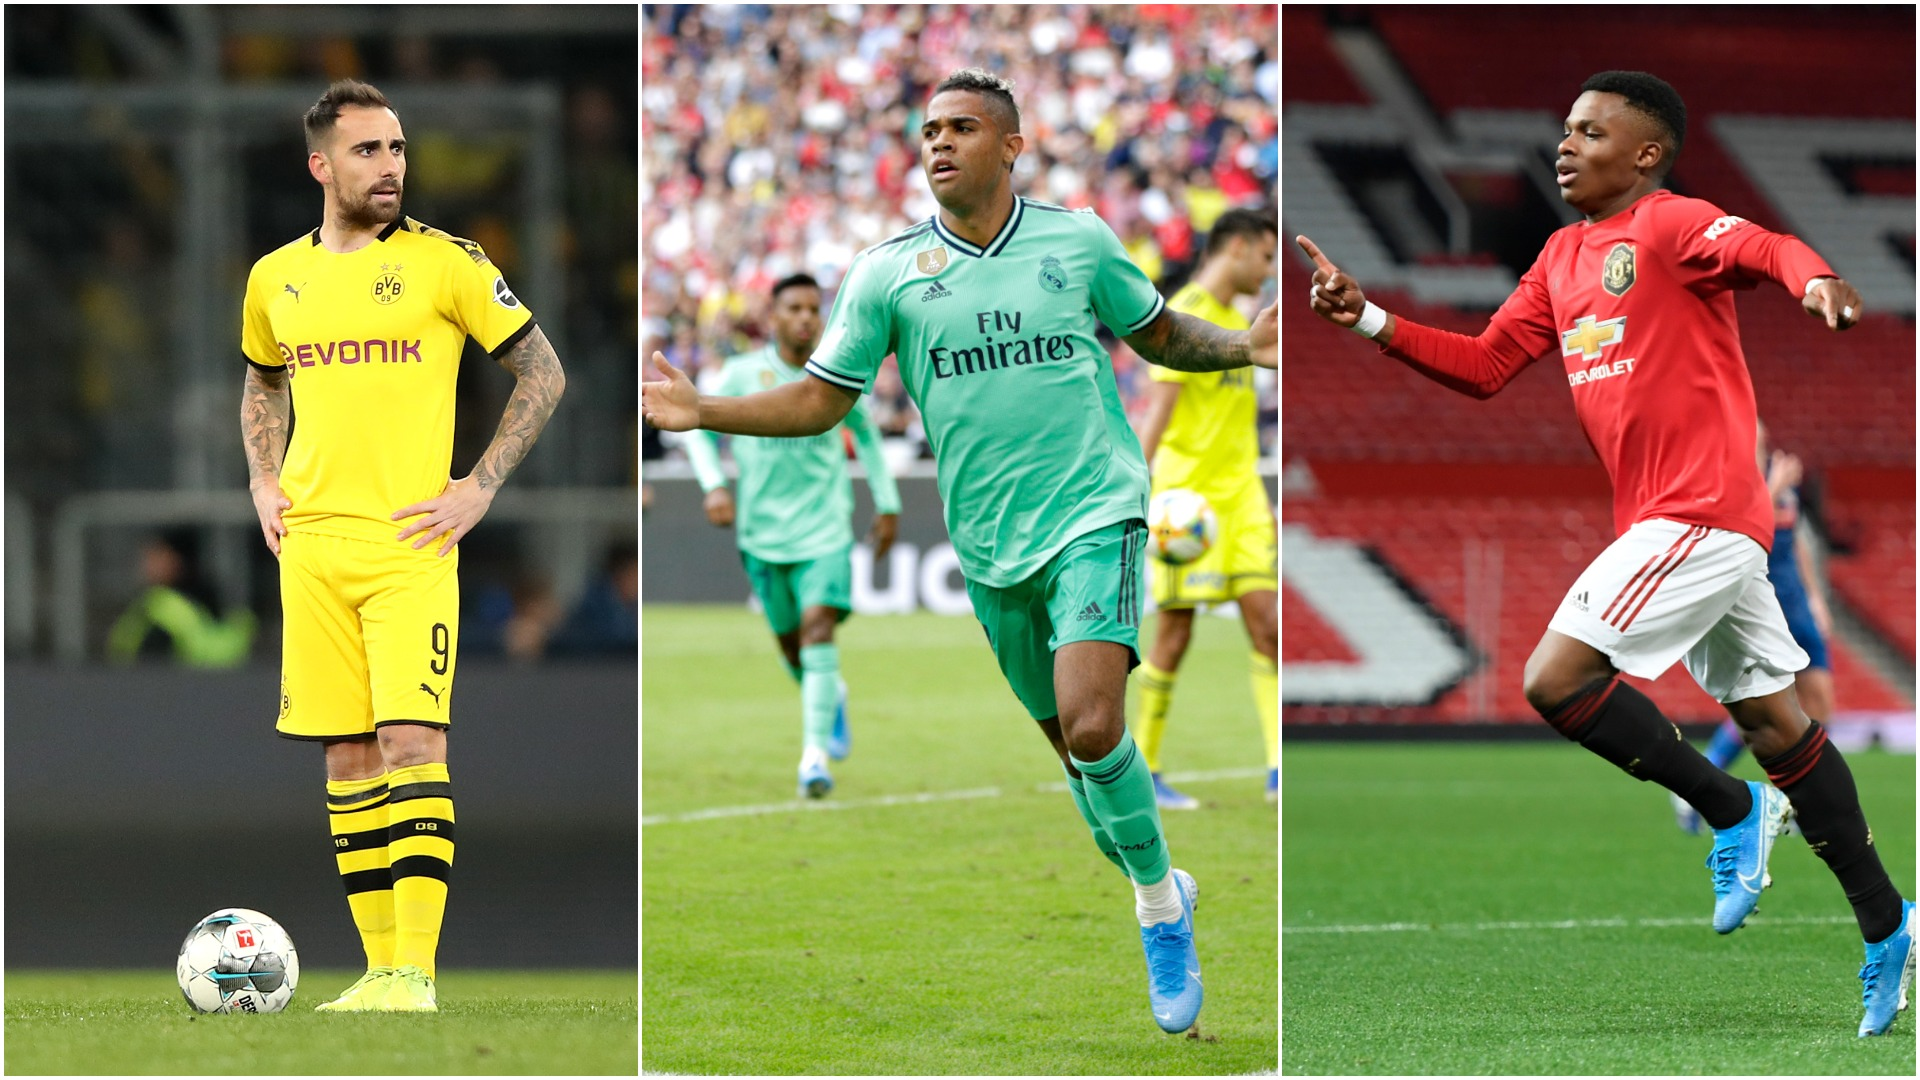 Alcacer, Mariano and the 'short-term options' Man Utd could target after Rashford injury